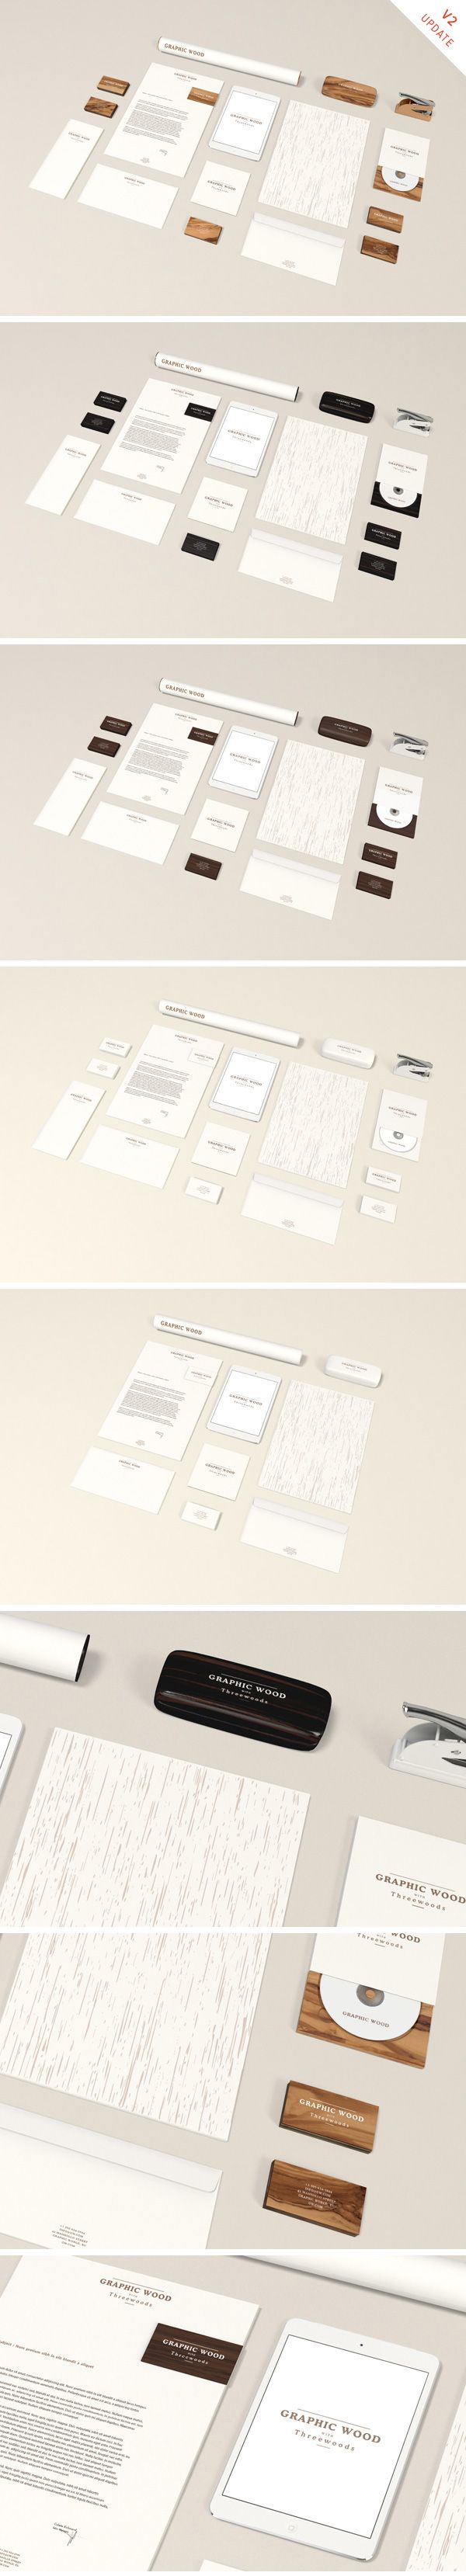 A high-resolution stationery mock-up with olive wood theme and 10 different objects to create a distinctive presentation...